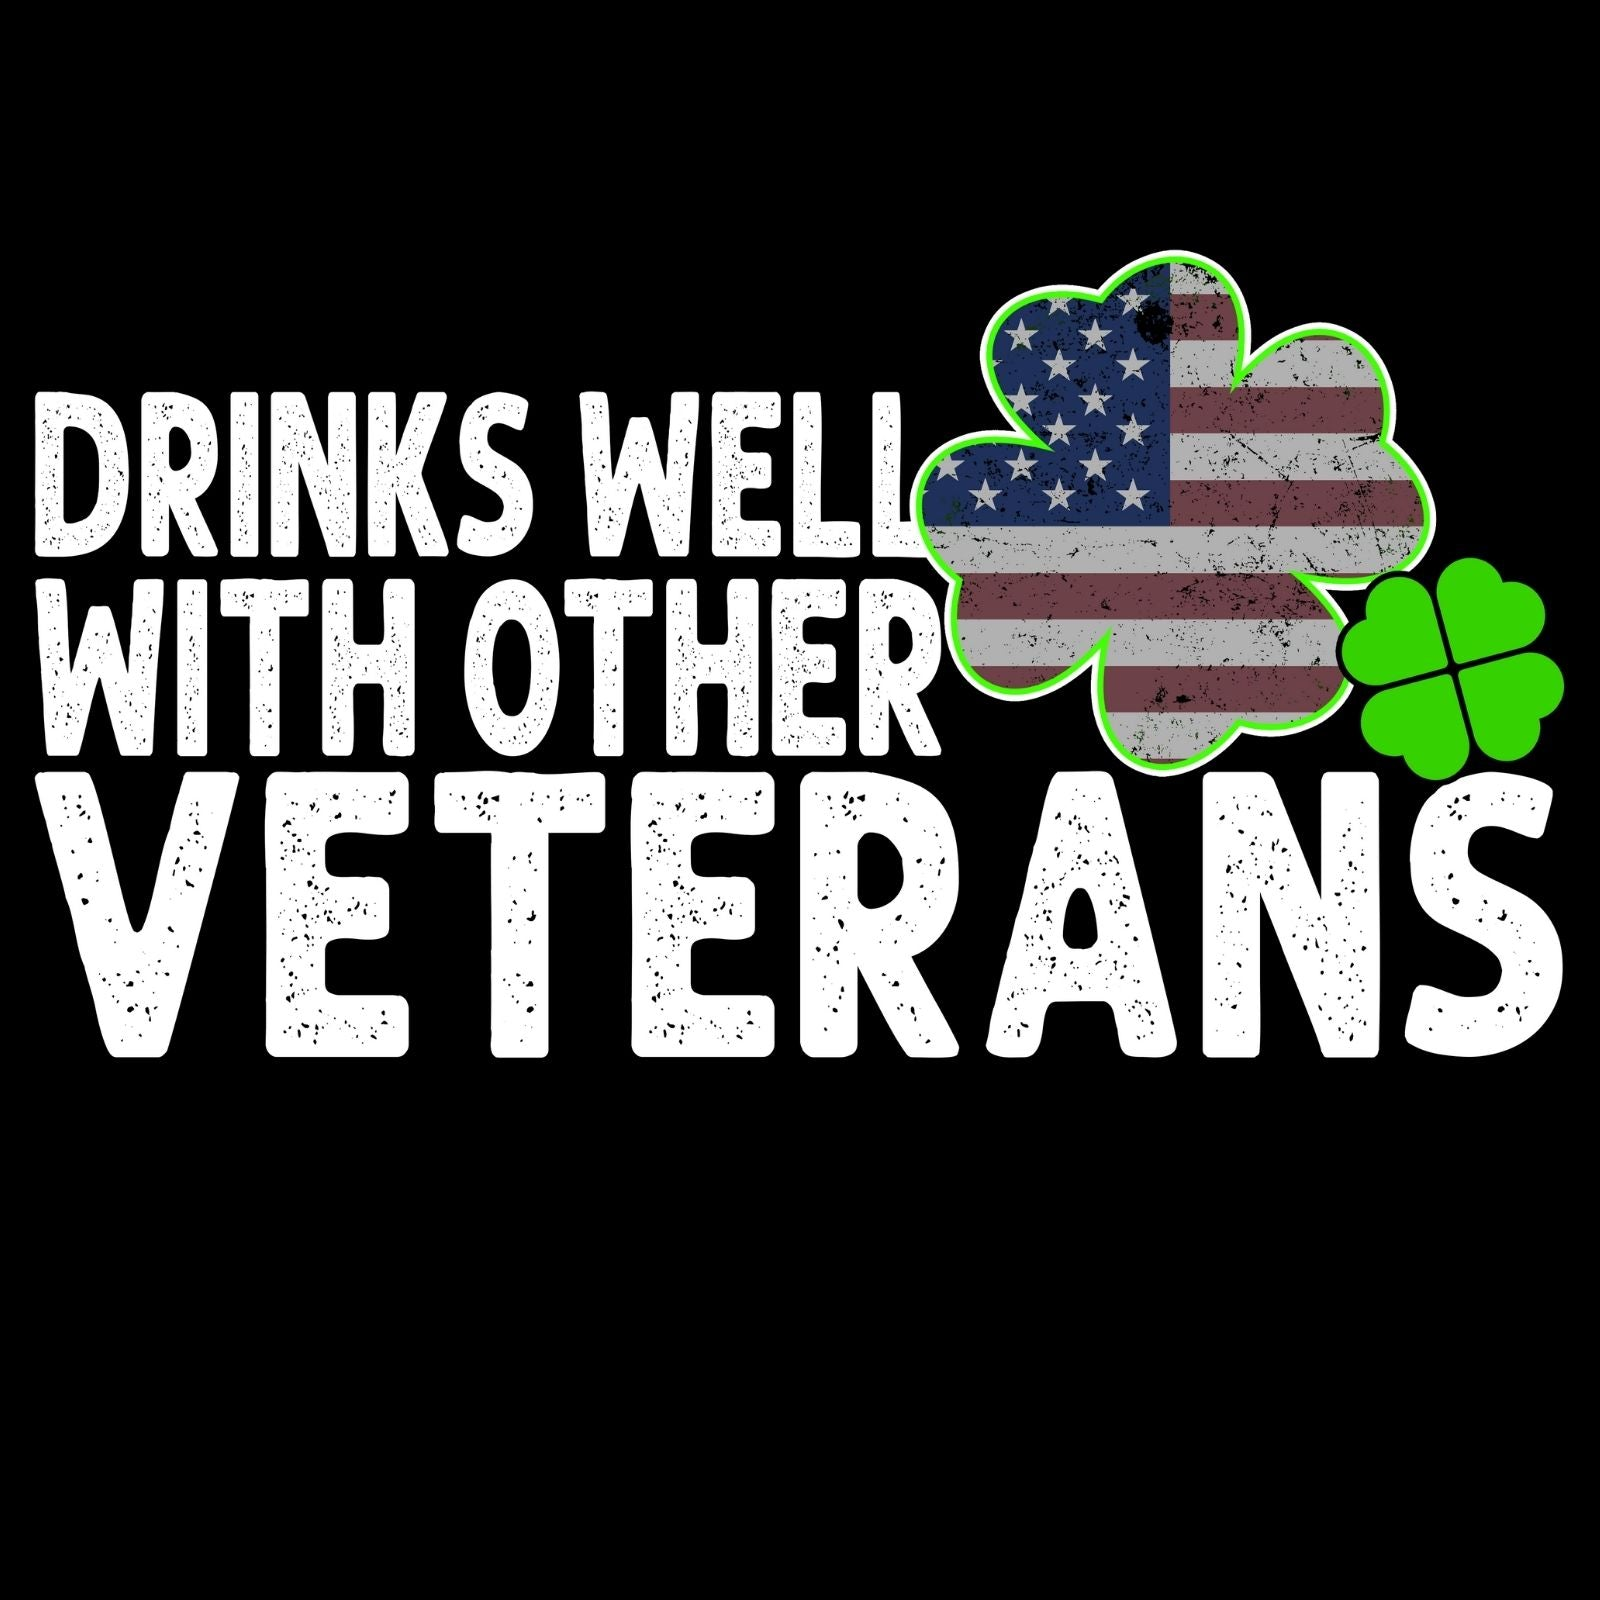 Drinks Well With Other Veterans - Bastard Graphics